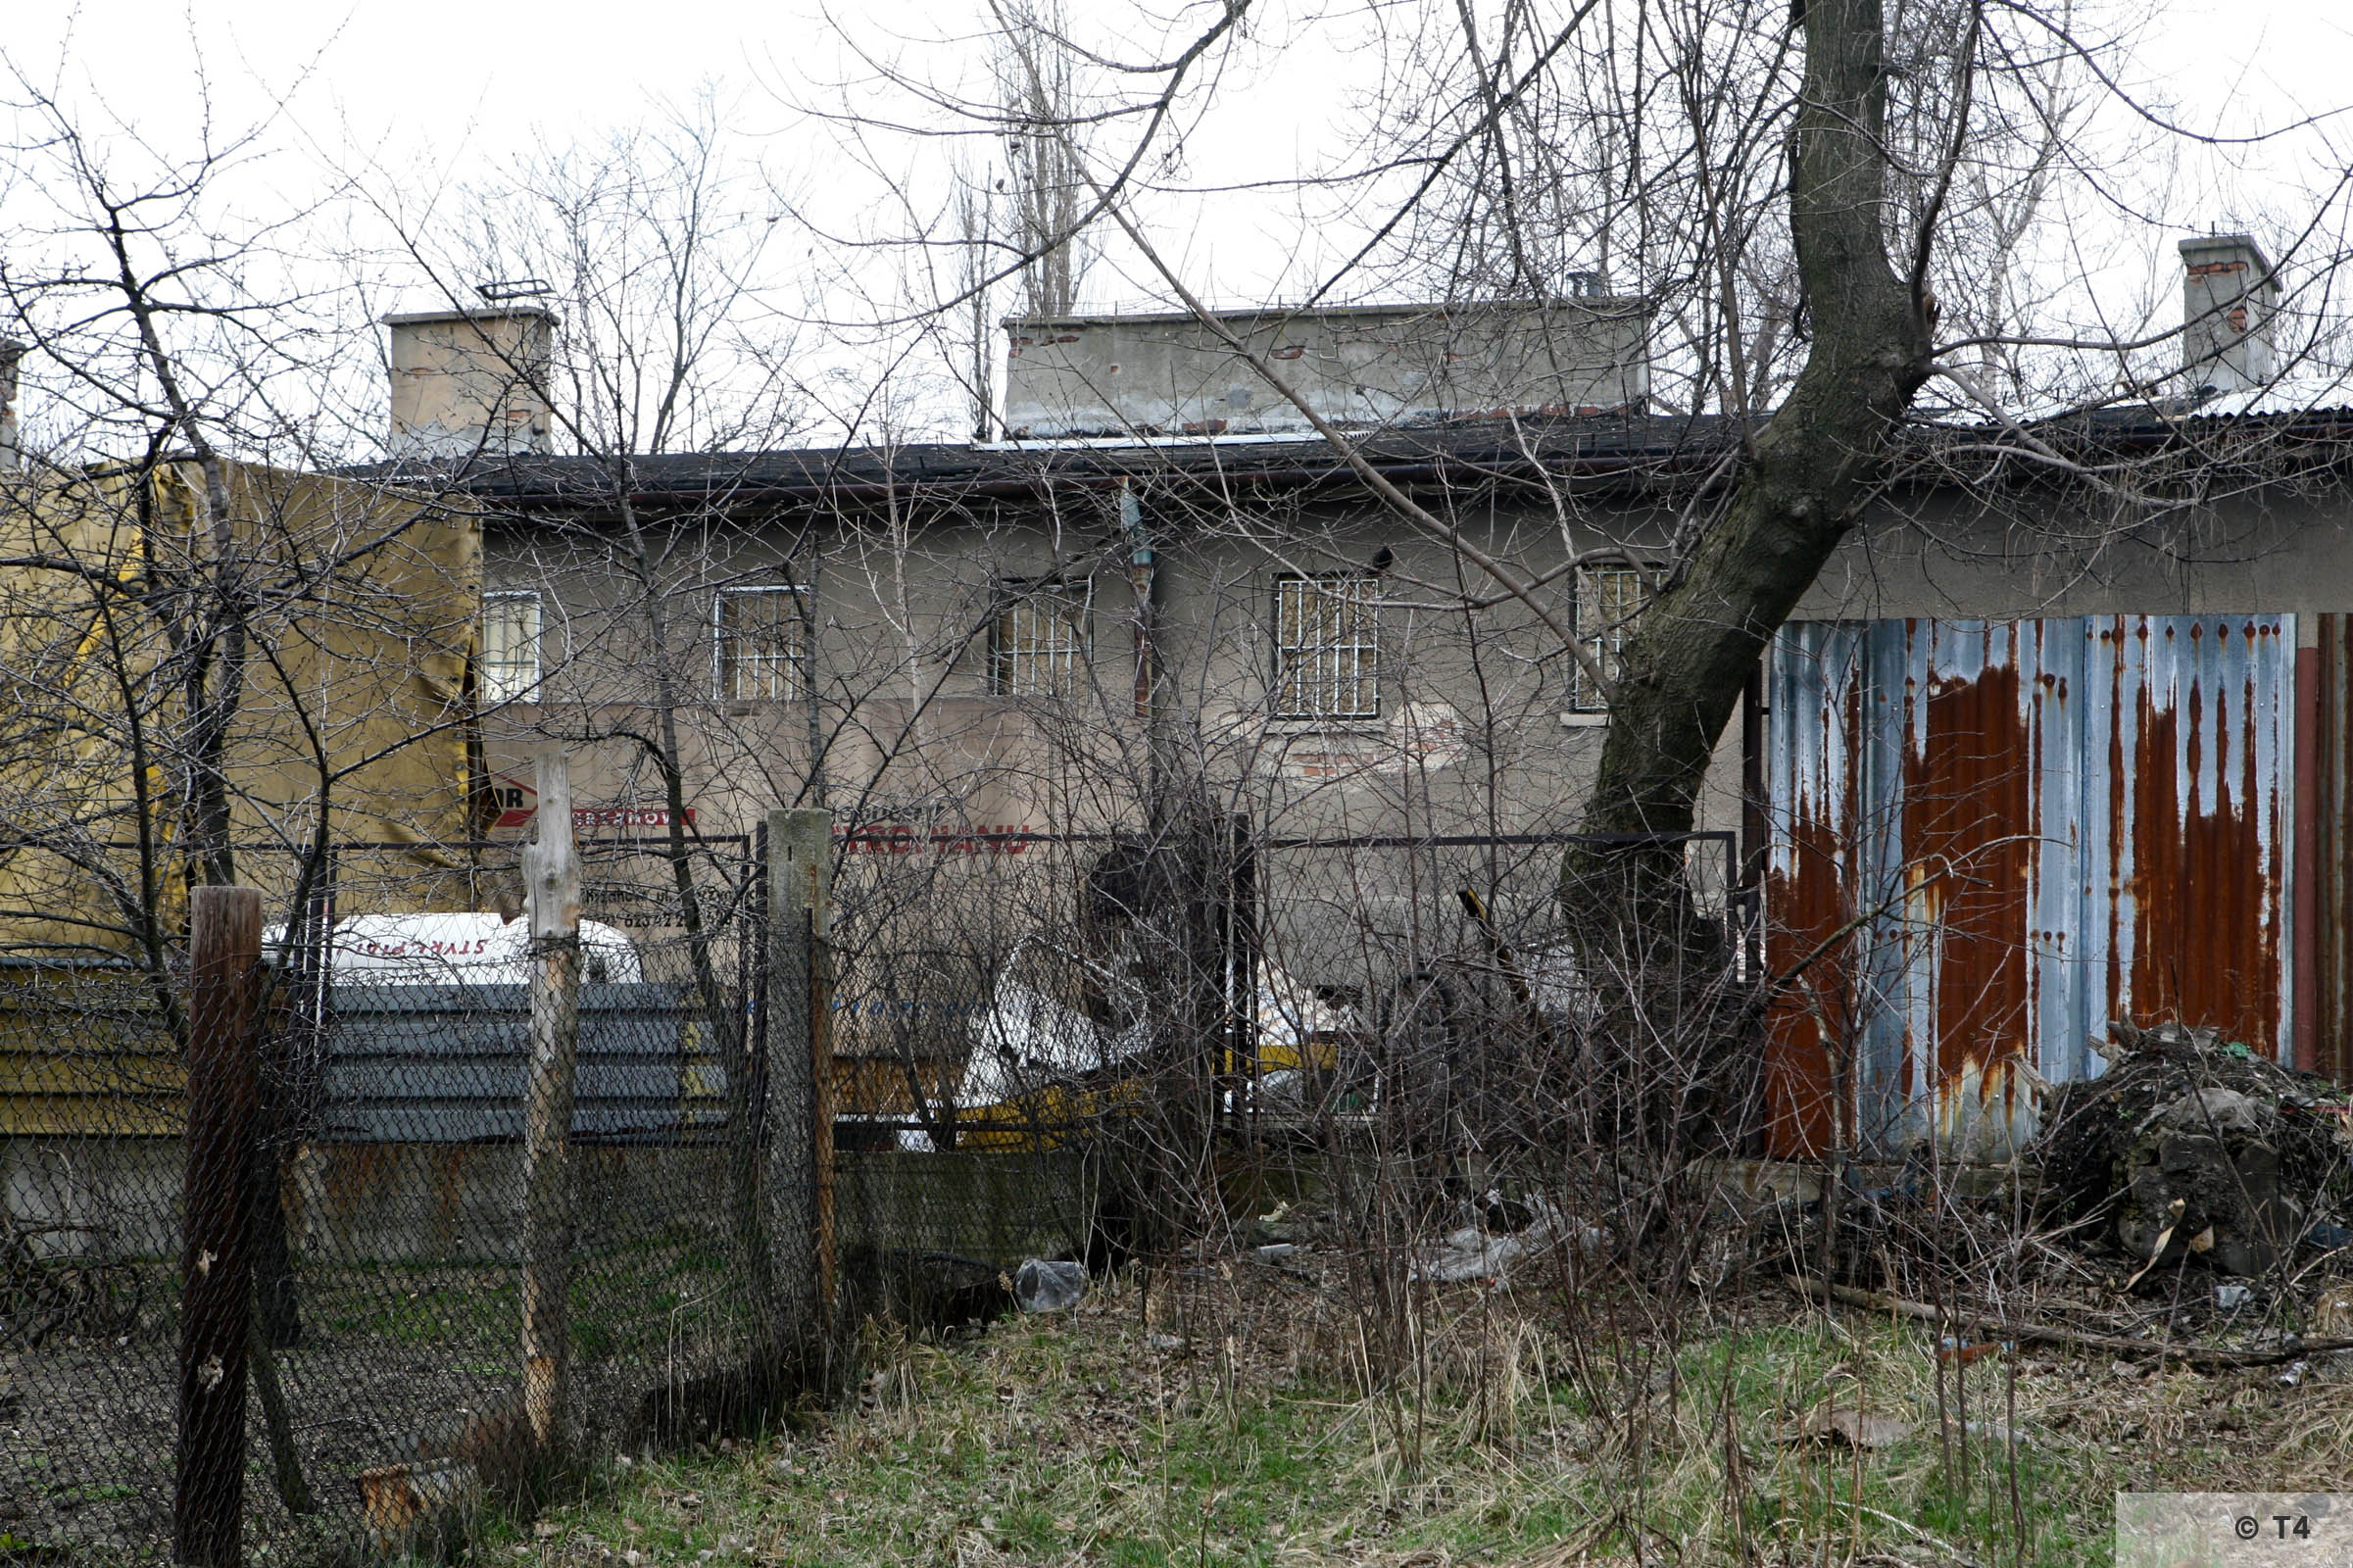 Building of the Wascherei and the cells for prisoners. 2007 T4 6225